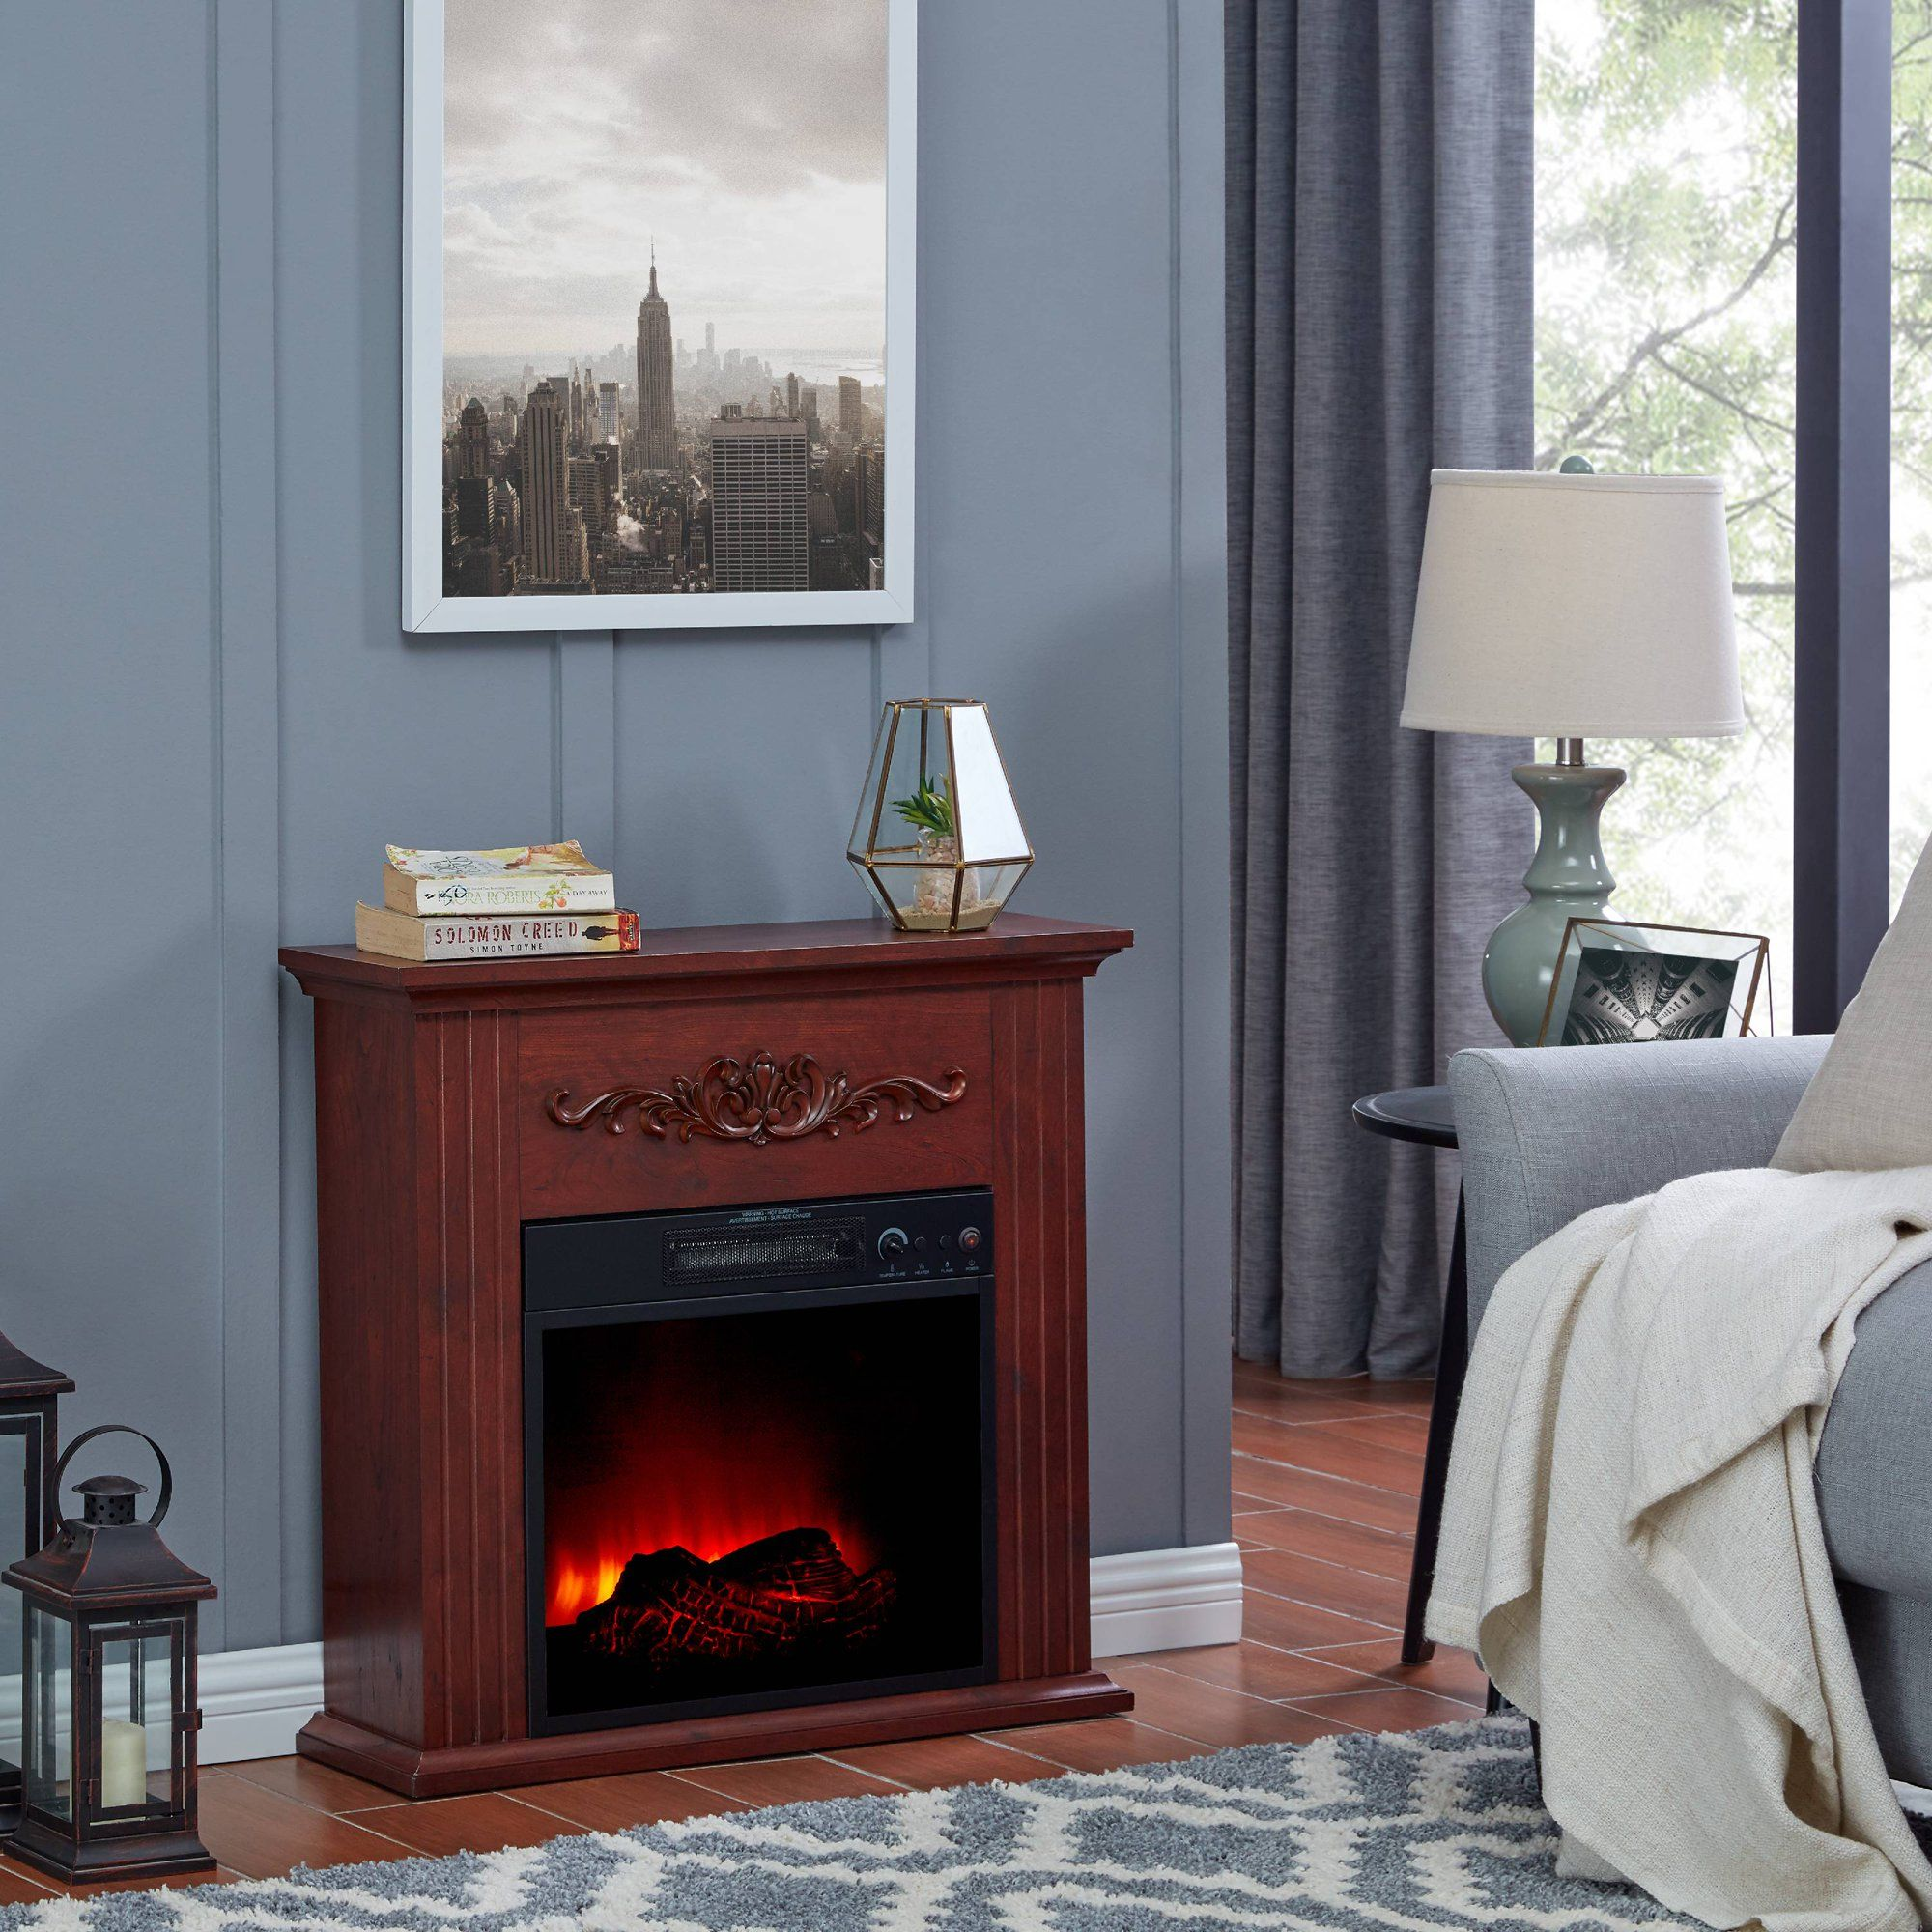 Bold Flame 28 Inch Electric Fireplace Heater Chestnut Walmart Com Small Apartment Room Electric Fireplace Electric Fireplace Heater